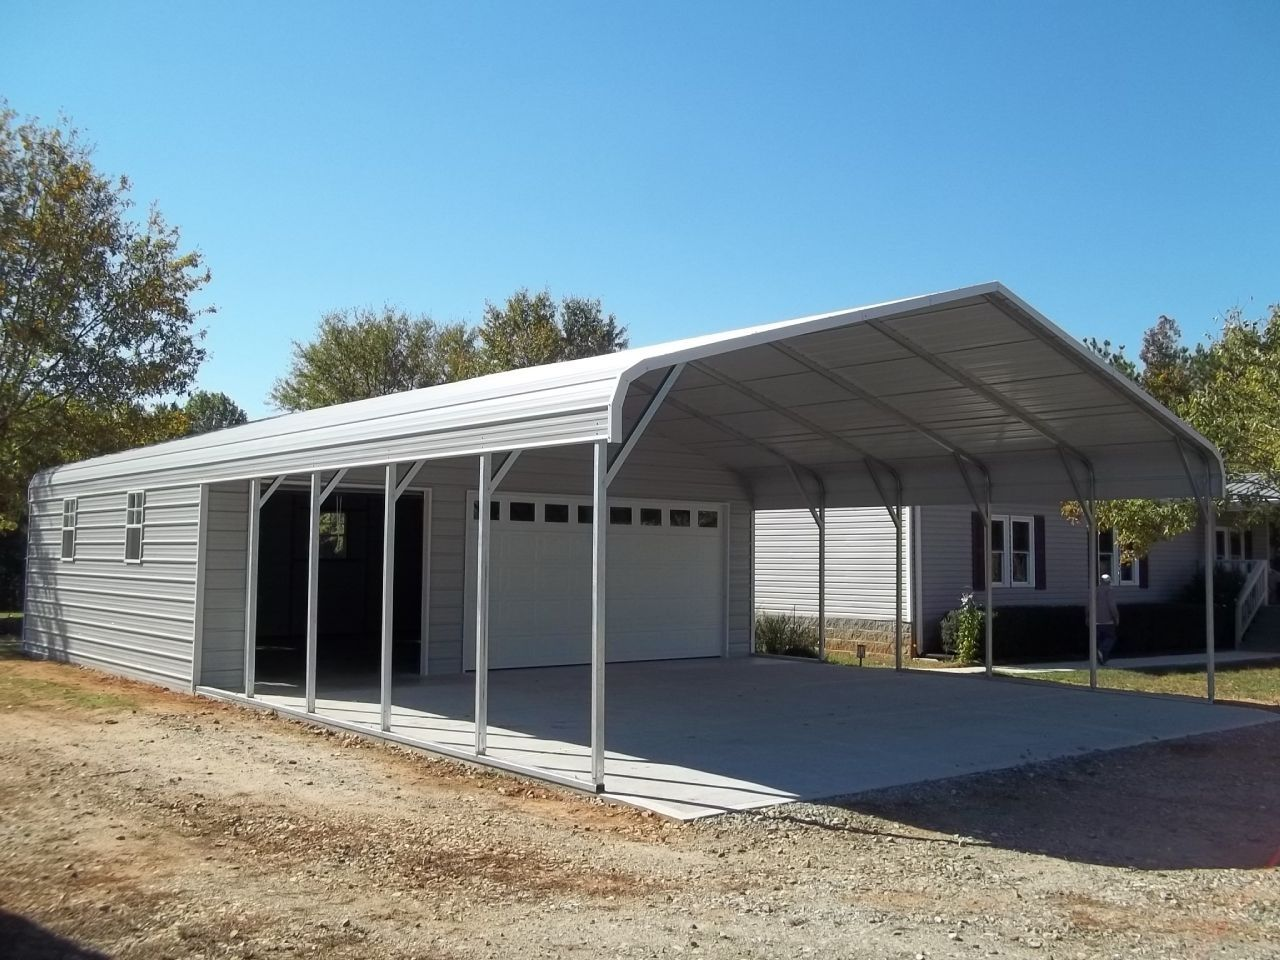 Carport With Storage Shed Construction Ideas Nice Shed ...